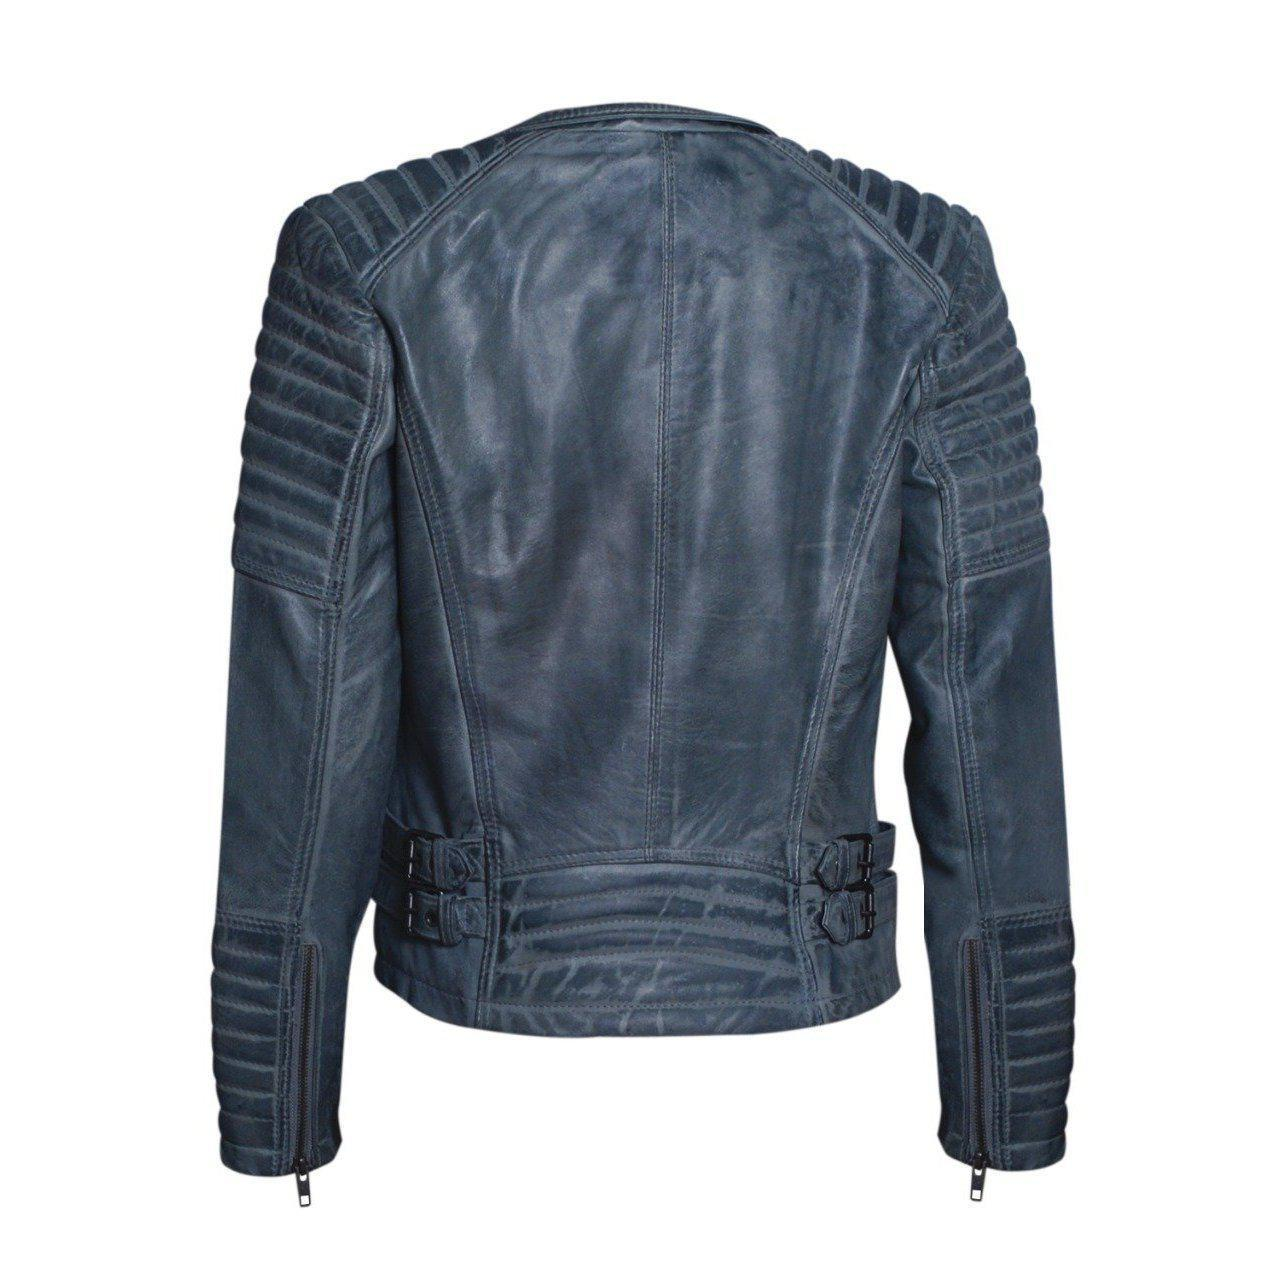 Stylish Grey Leather Jacket for Women with Long Sleeves - Women Leather Jacket - Leather Jacket